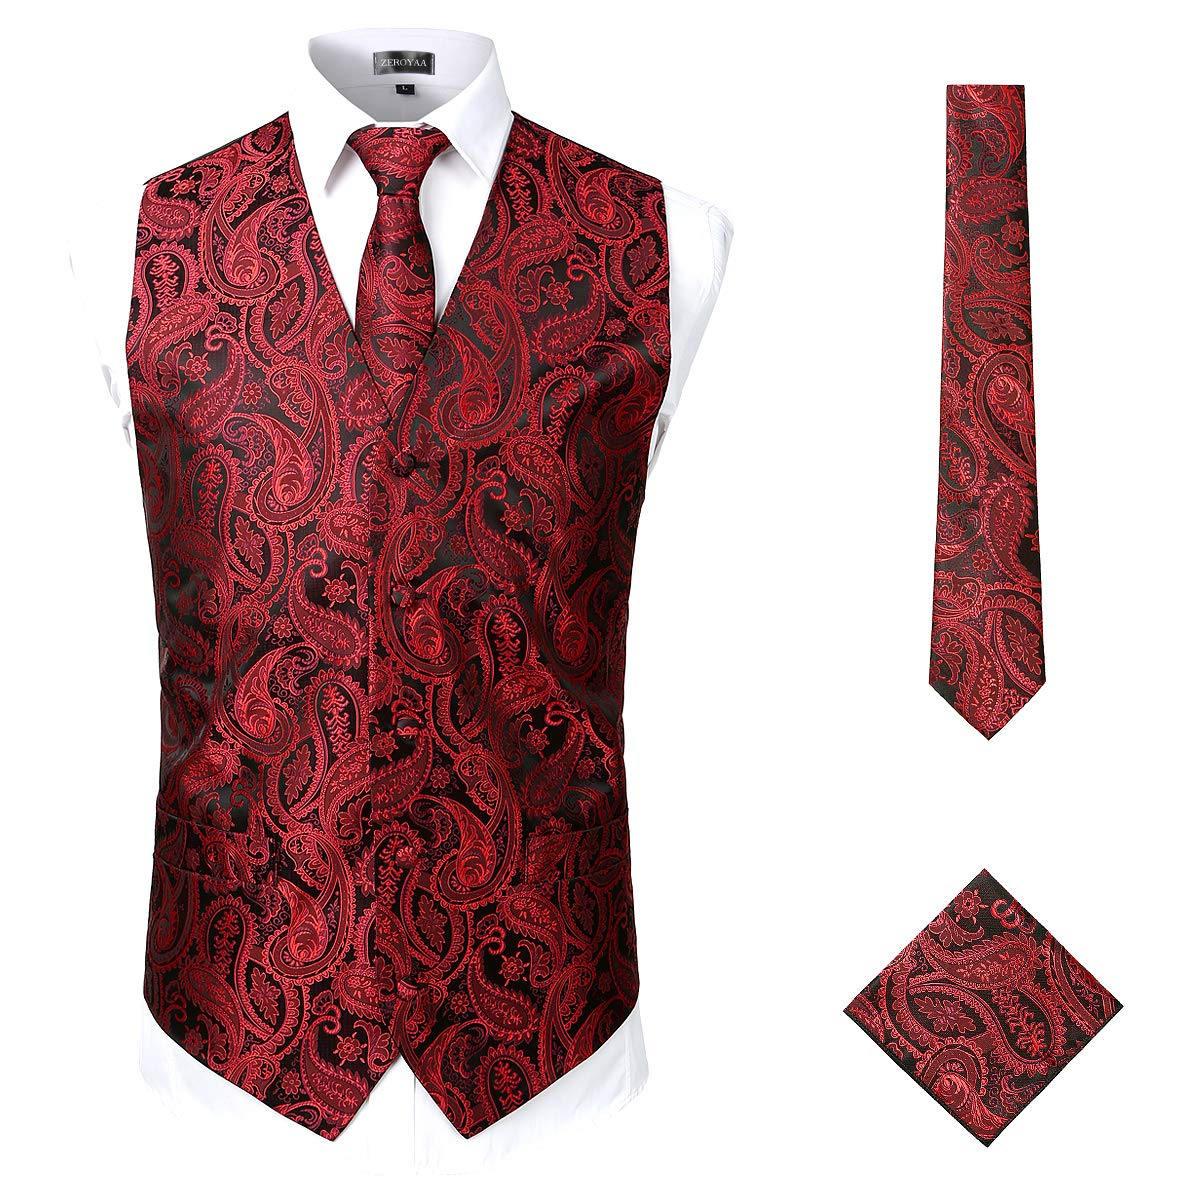 ZEROYAA Mens Classic 3pc Jacquard Paisley Vest Set Necktie Pocket Square Waistcoat for Suit or Tuxedo ZLSV08 Burgundy Large by ZEROYAA